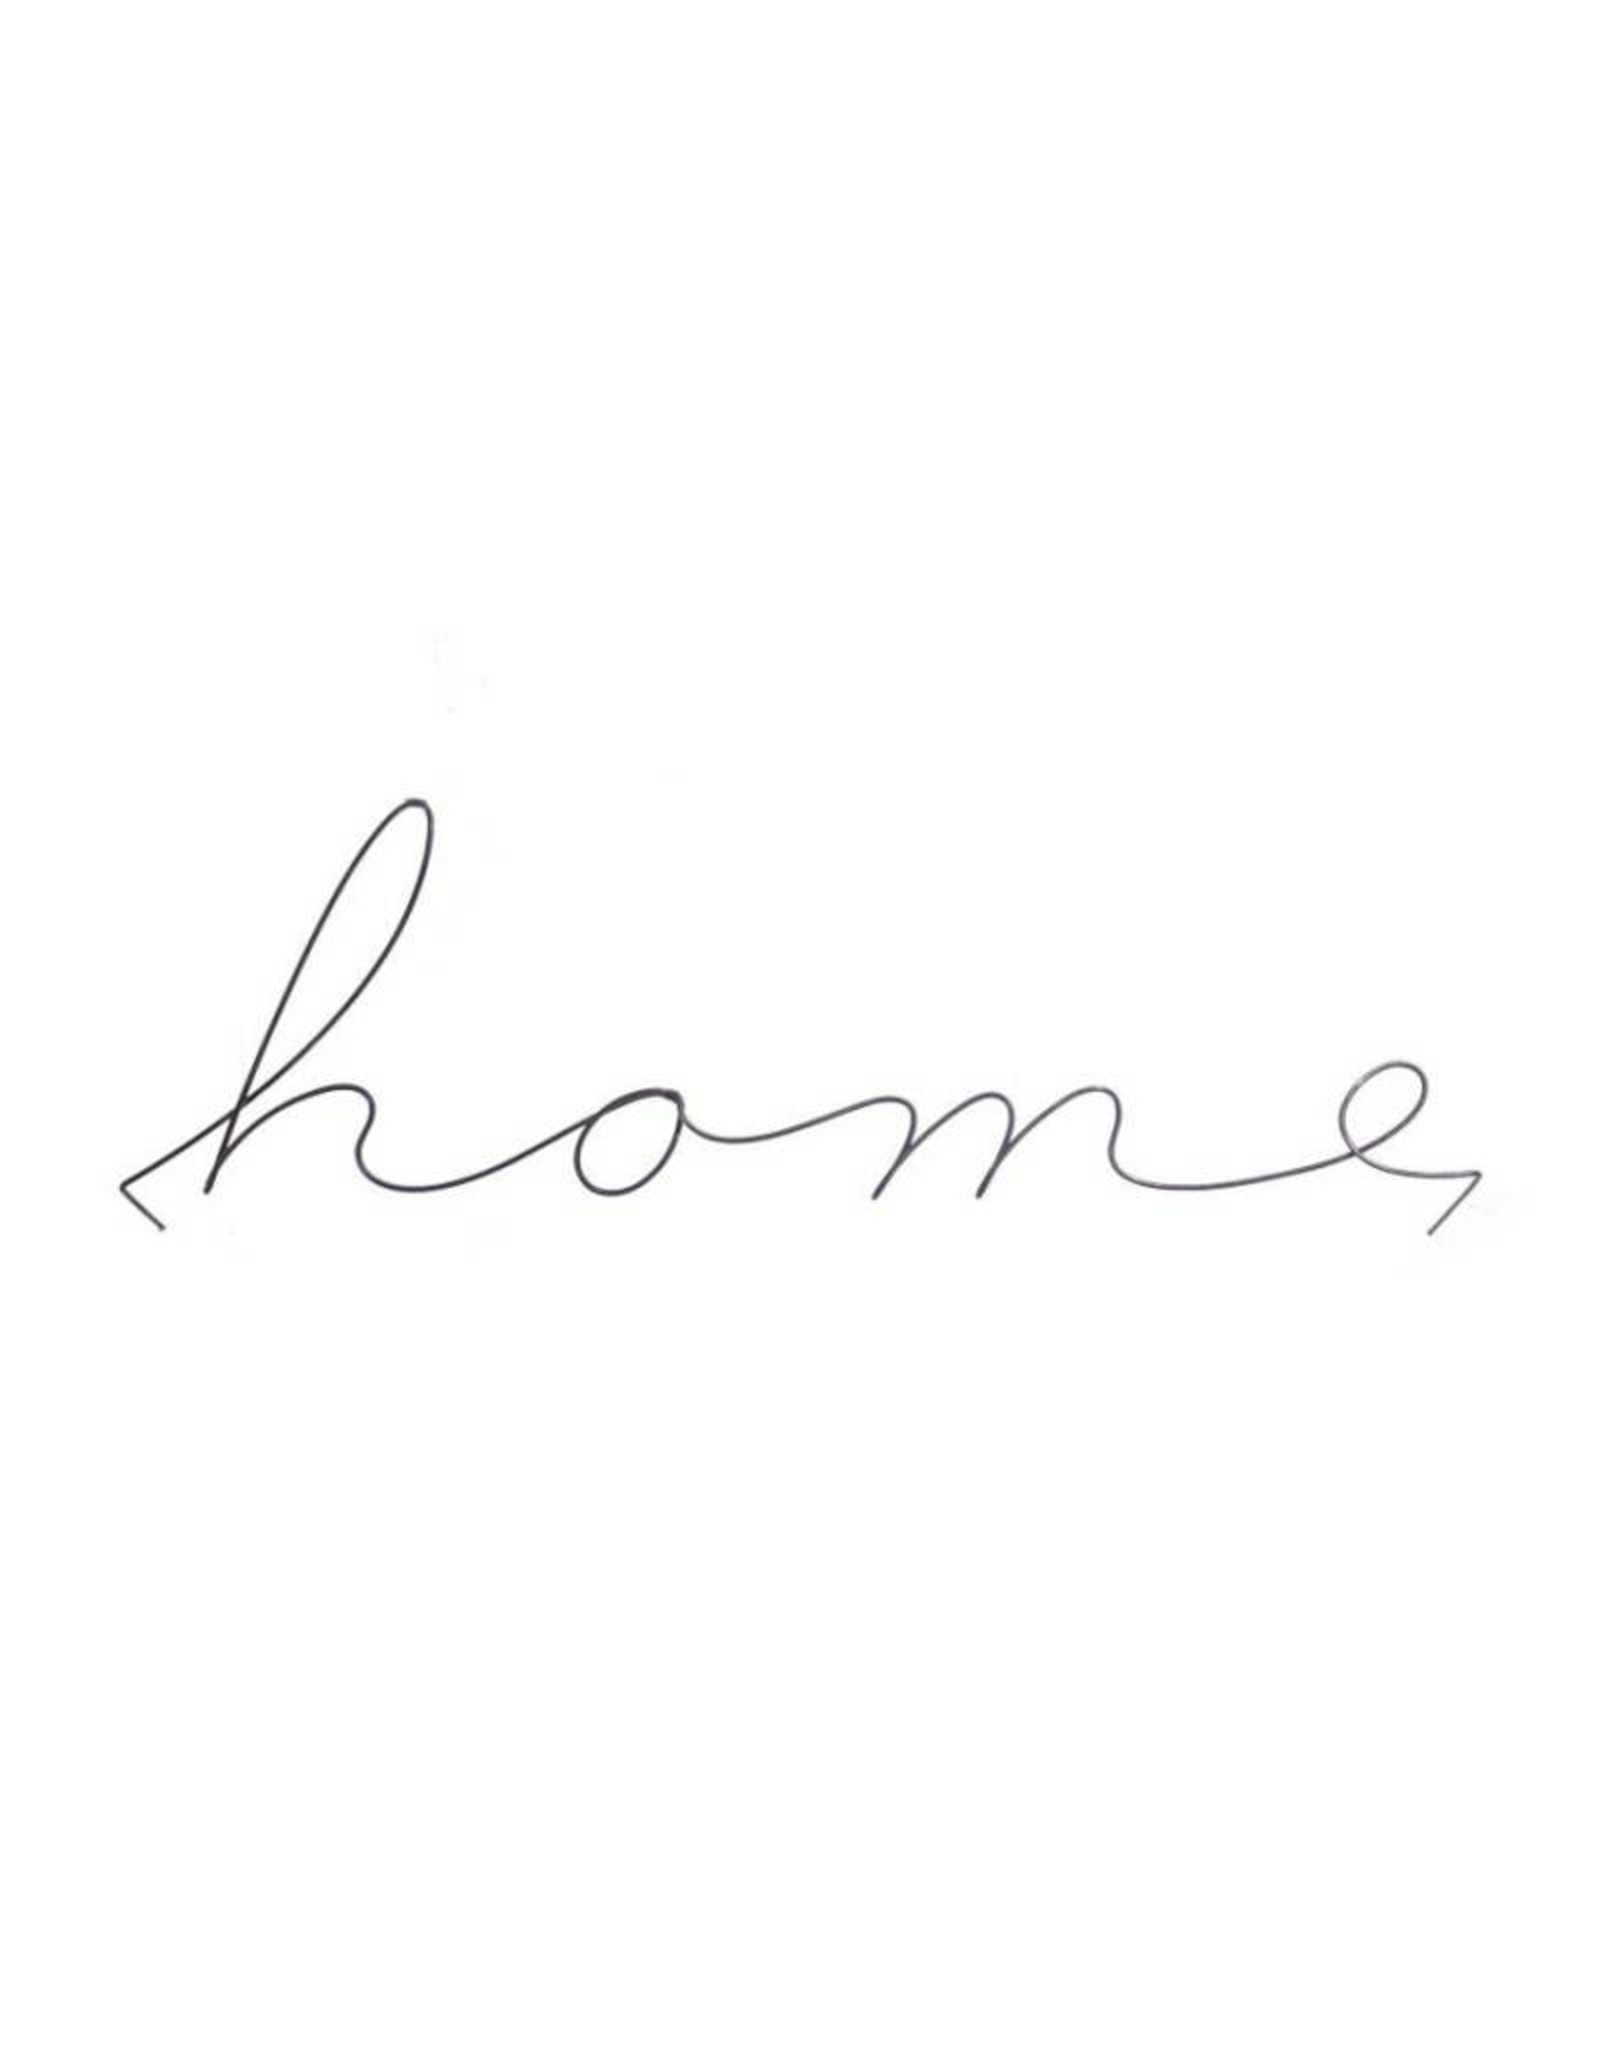 Gauge NYC 'home' wire word poetic